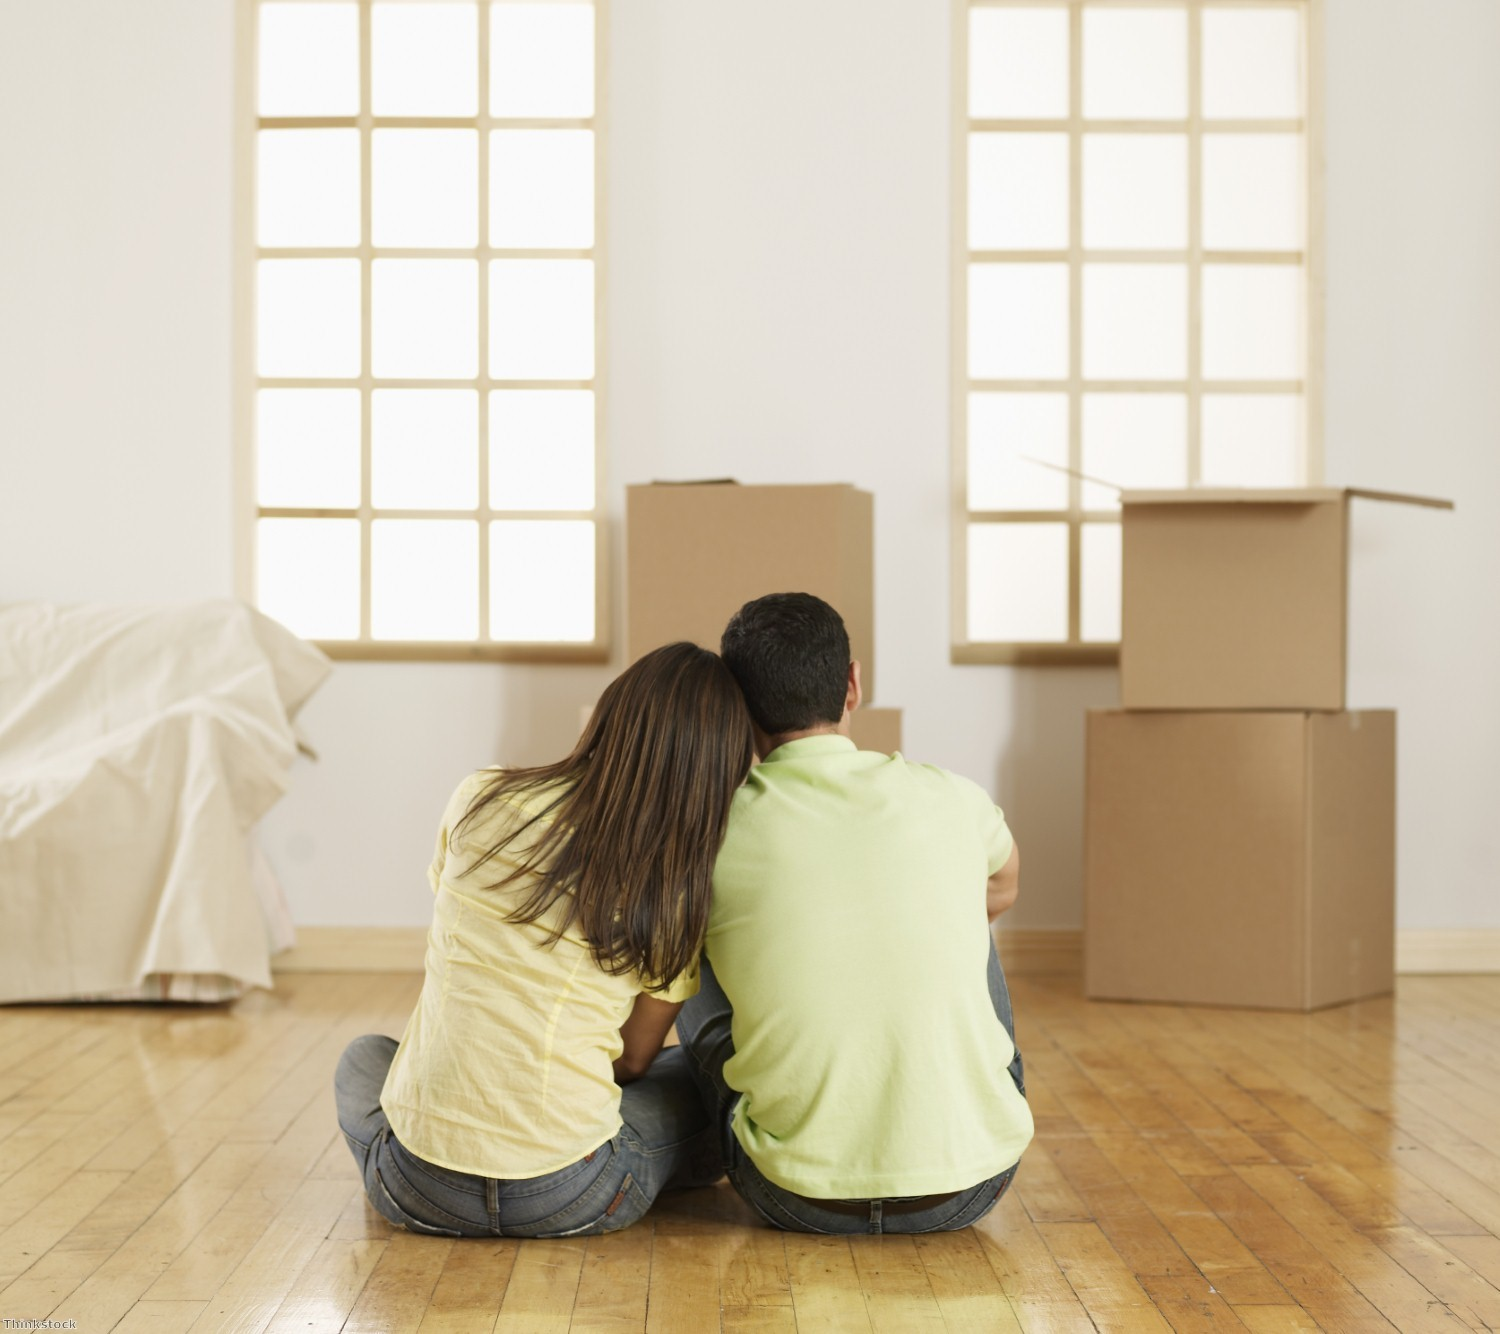 Practical help may benefit first-time buyers